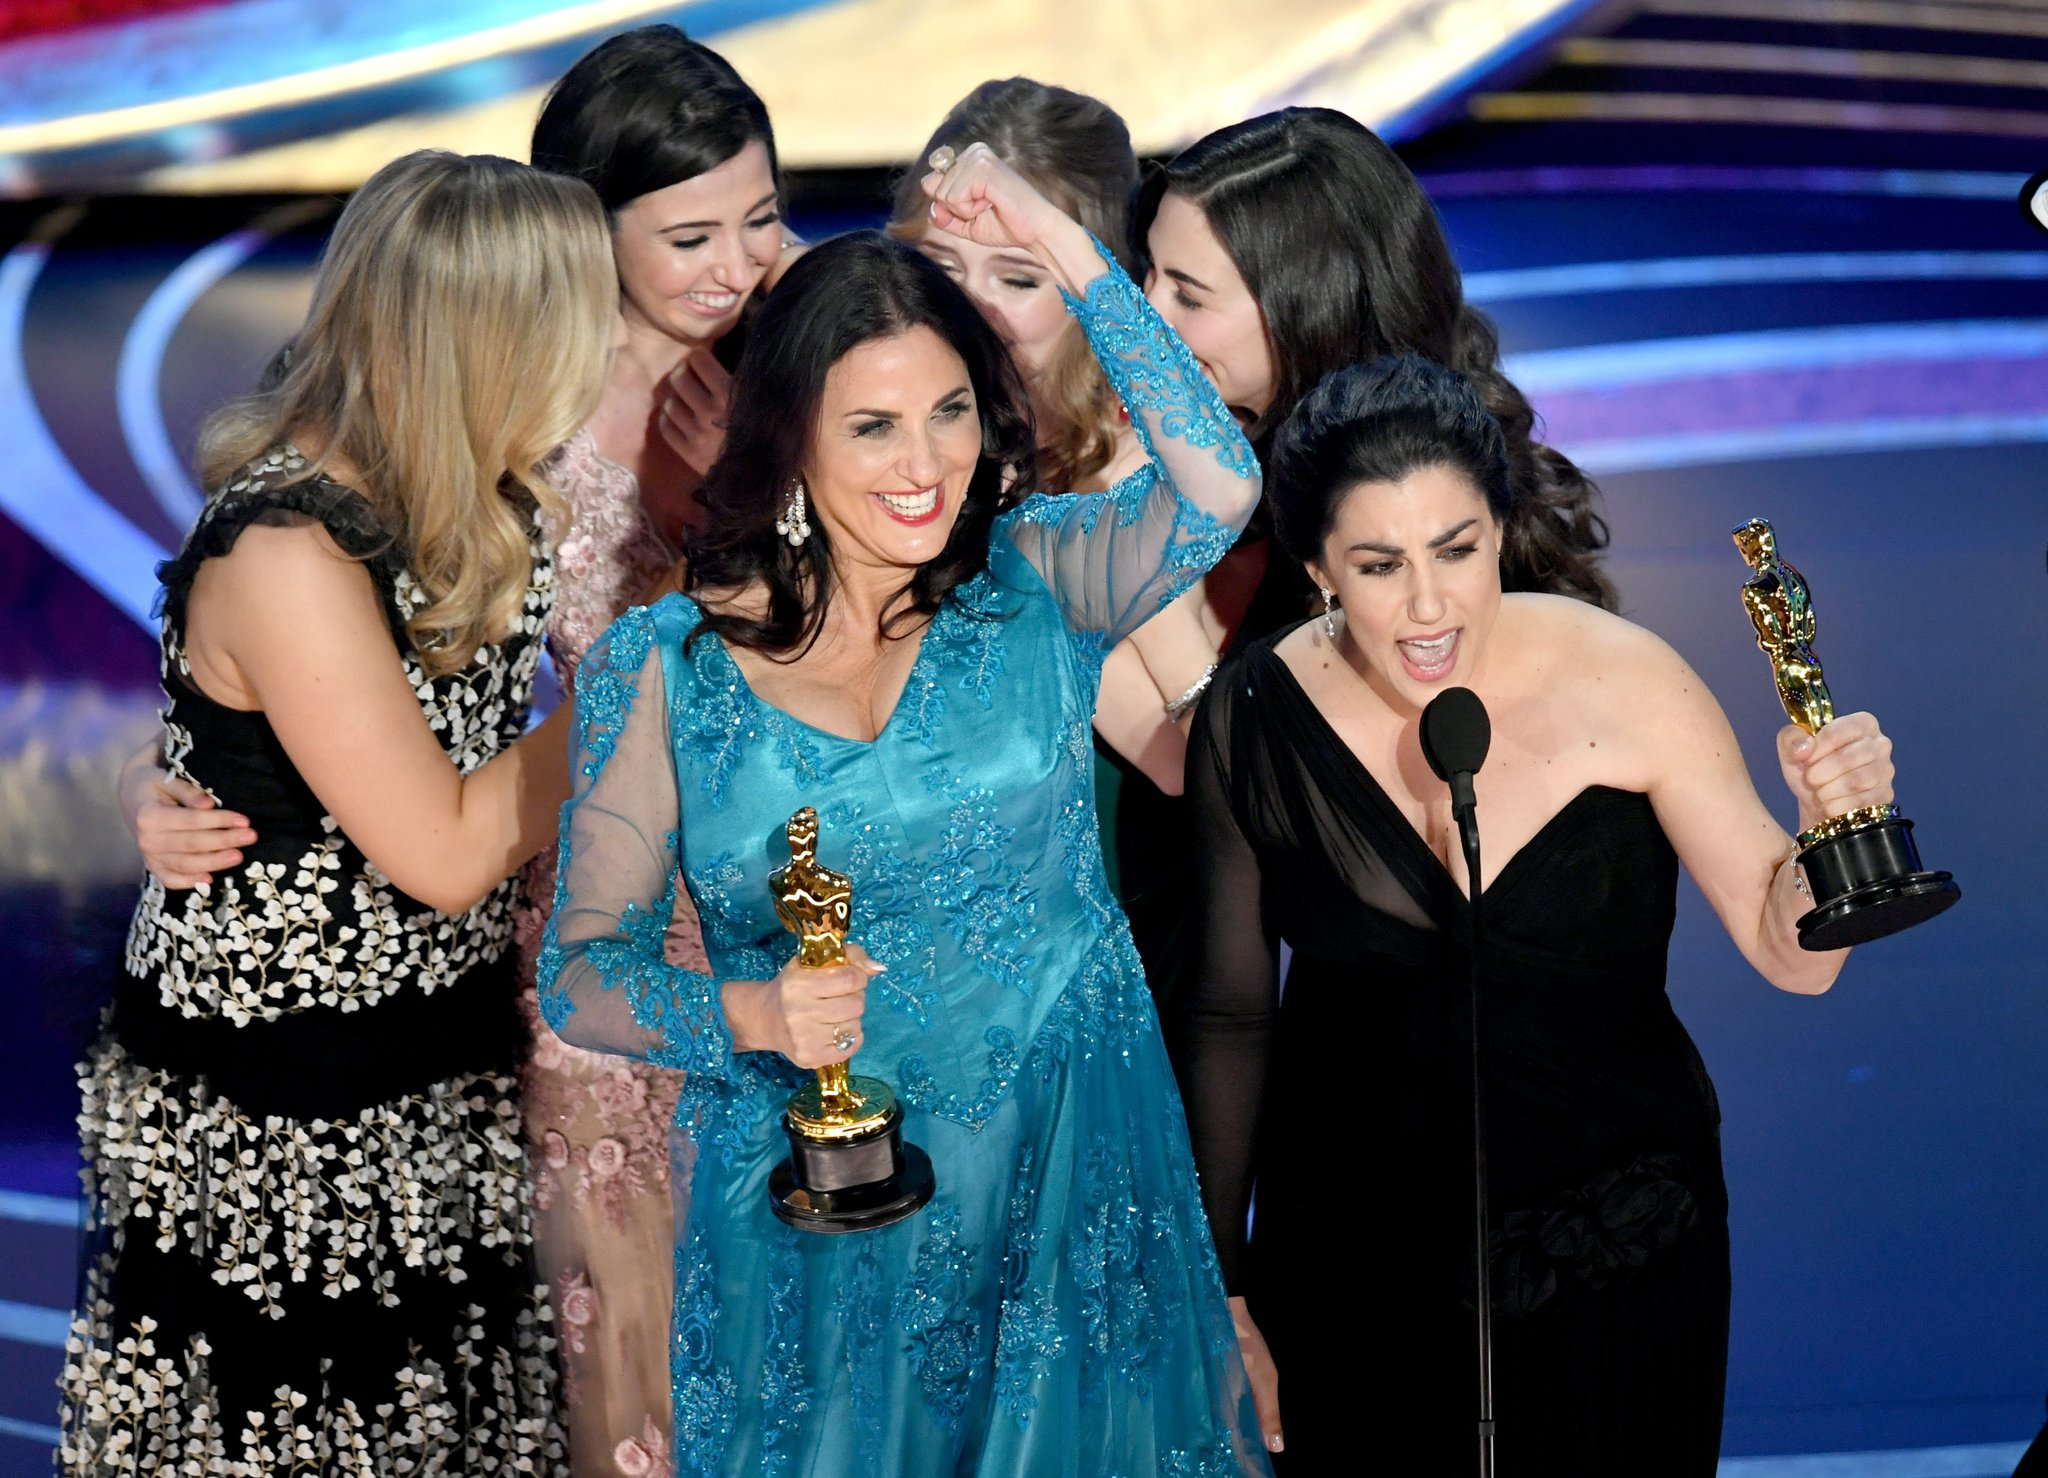 Producer Melissa Berton (Center) and Director Rayka Zehtabchi (Right) accepting the award last February.  Via Getty Images